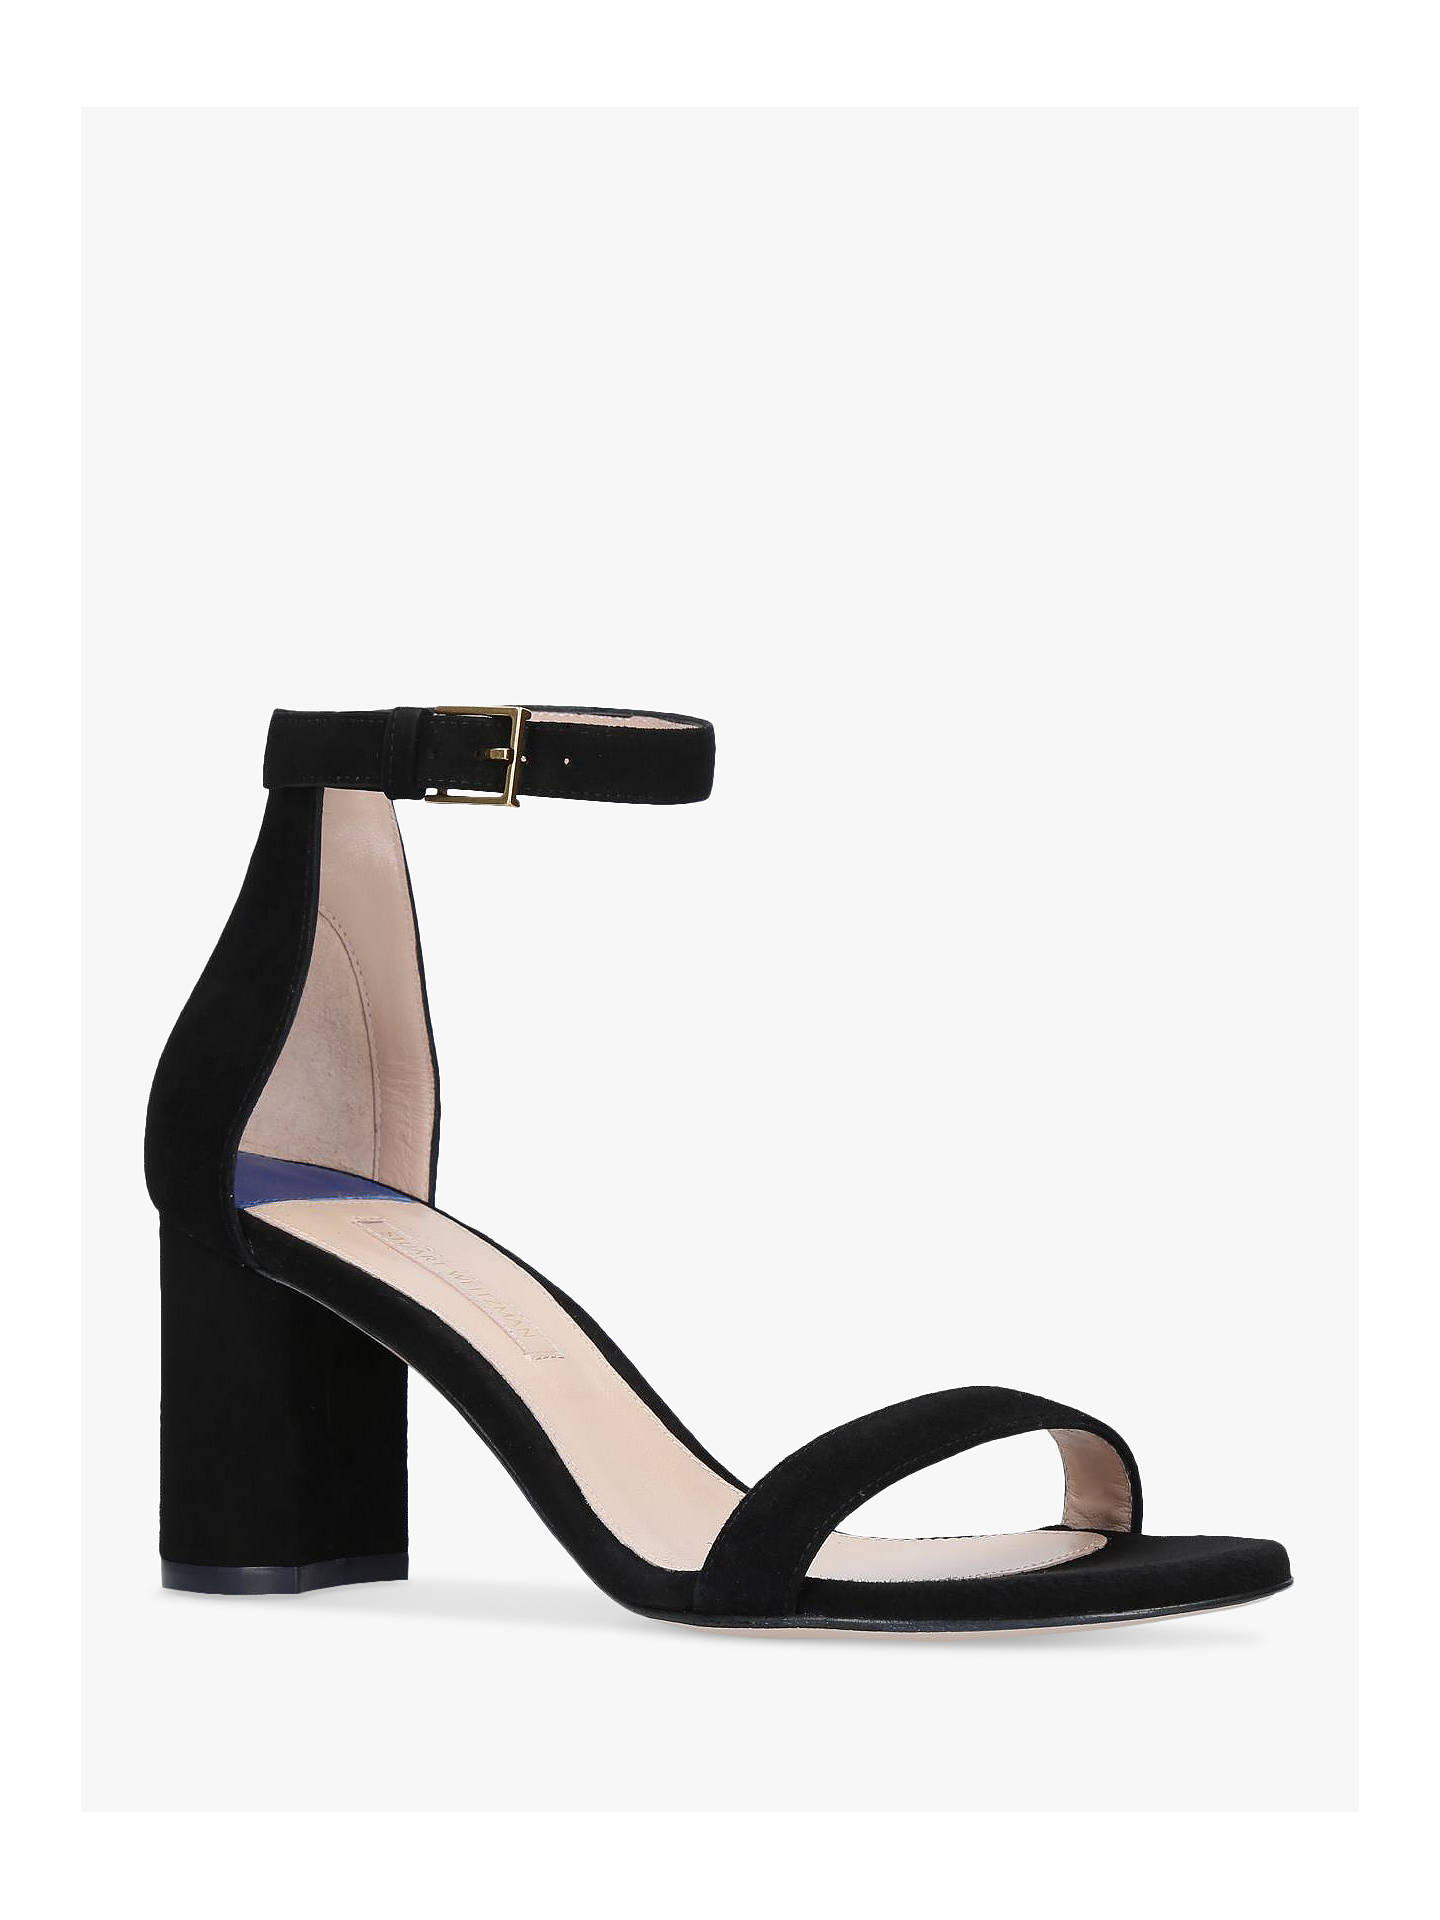 Buy Stuart Weitzman Less Nudist Block Heel Sandals, Black Suede, 6 Online at johnlewis.com